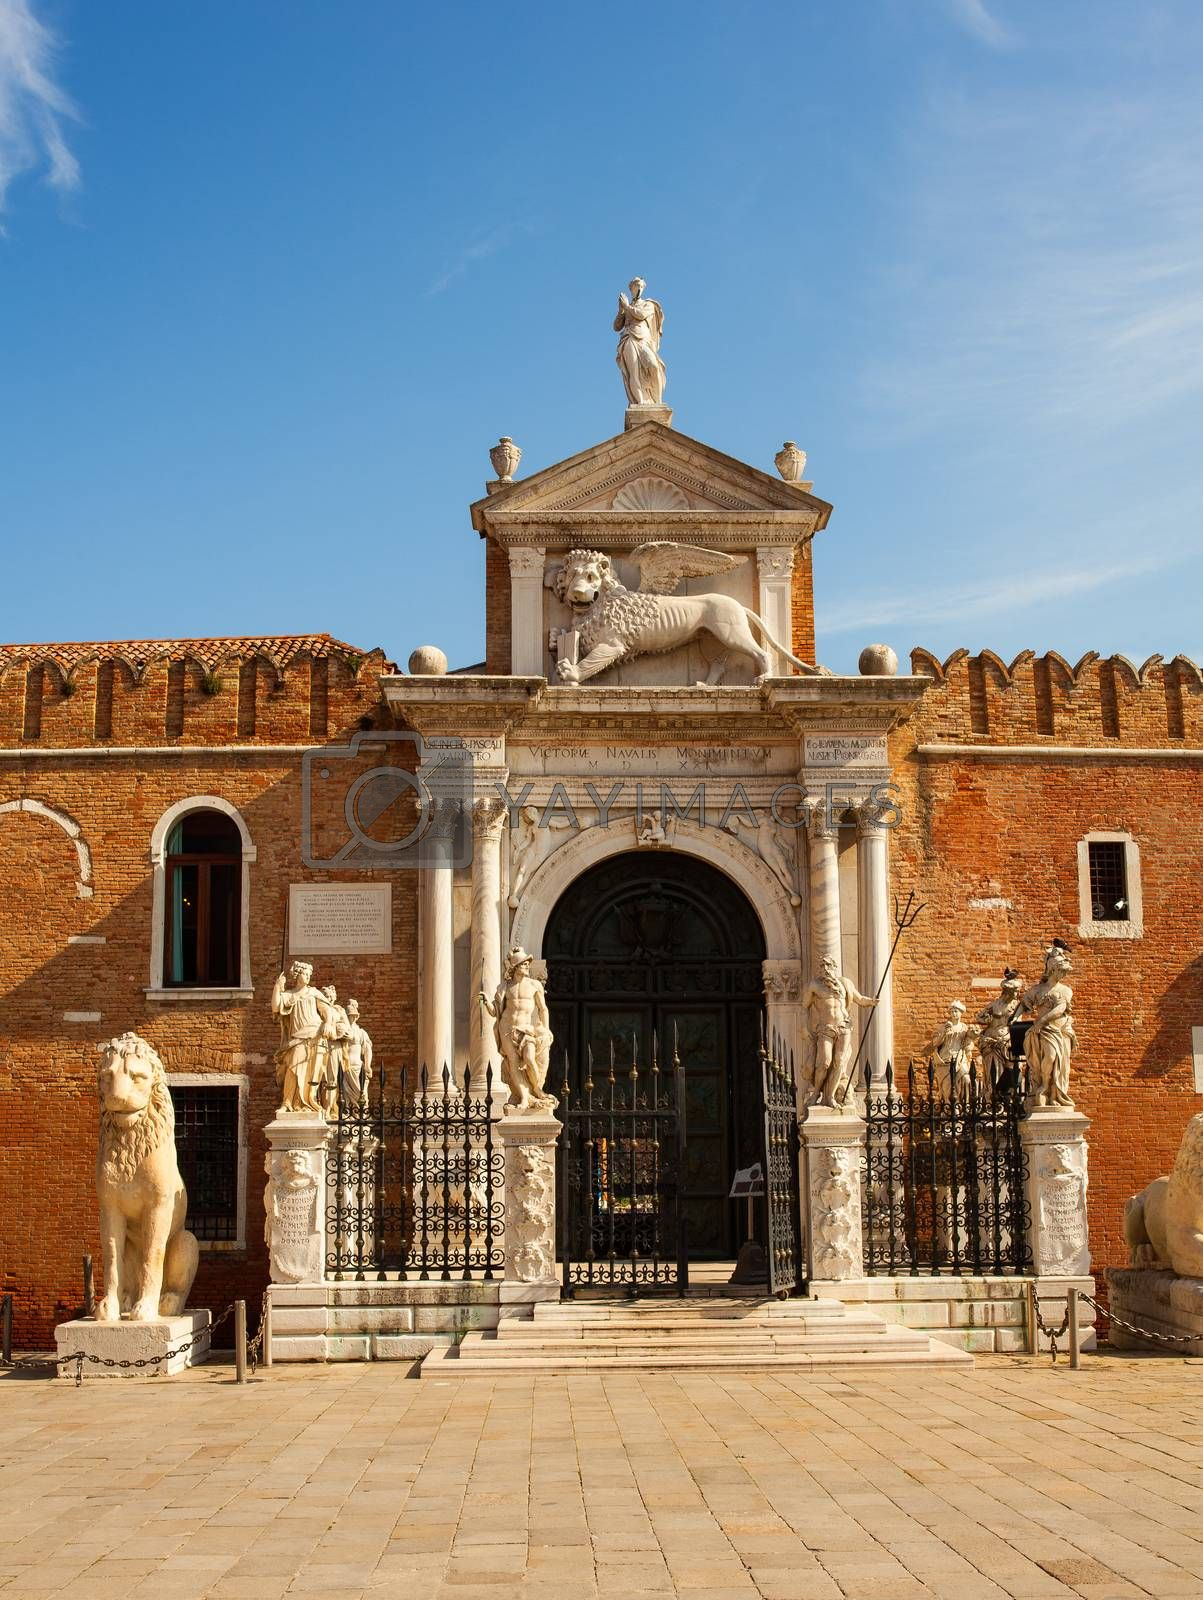 View of the historic Arsenale in Venice